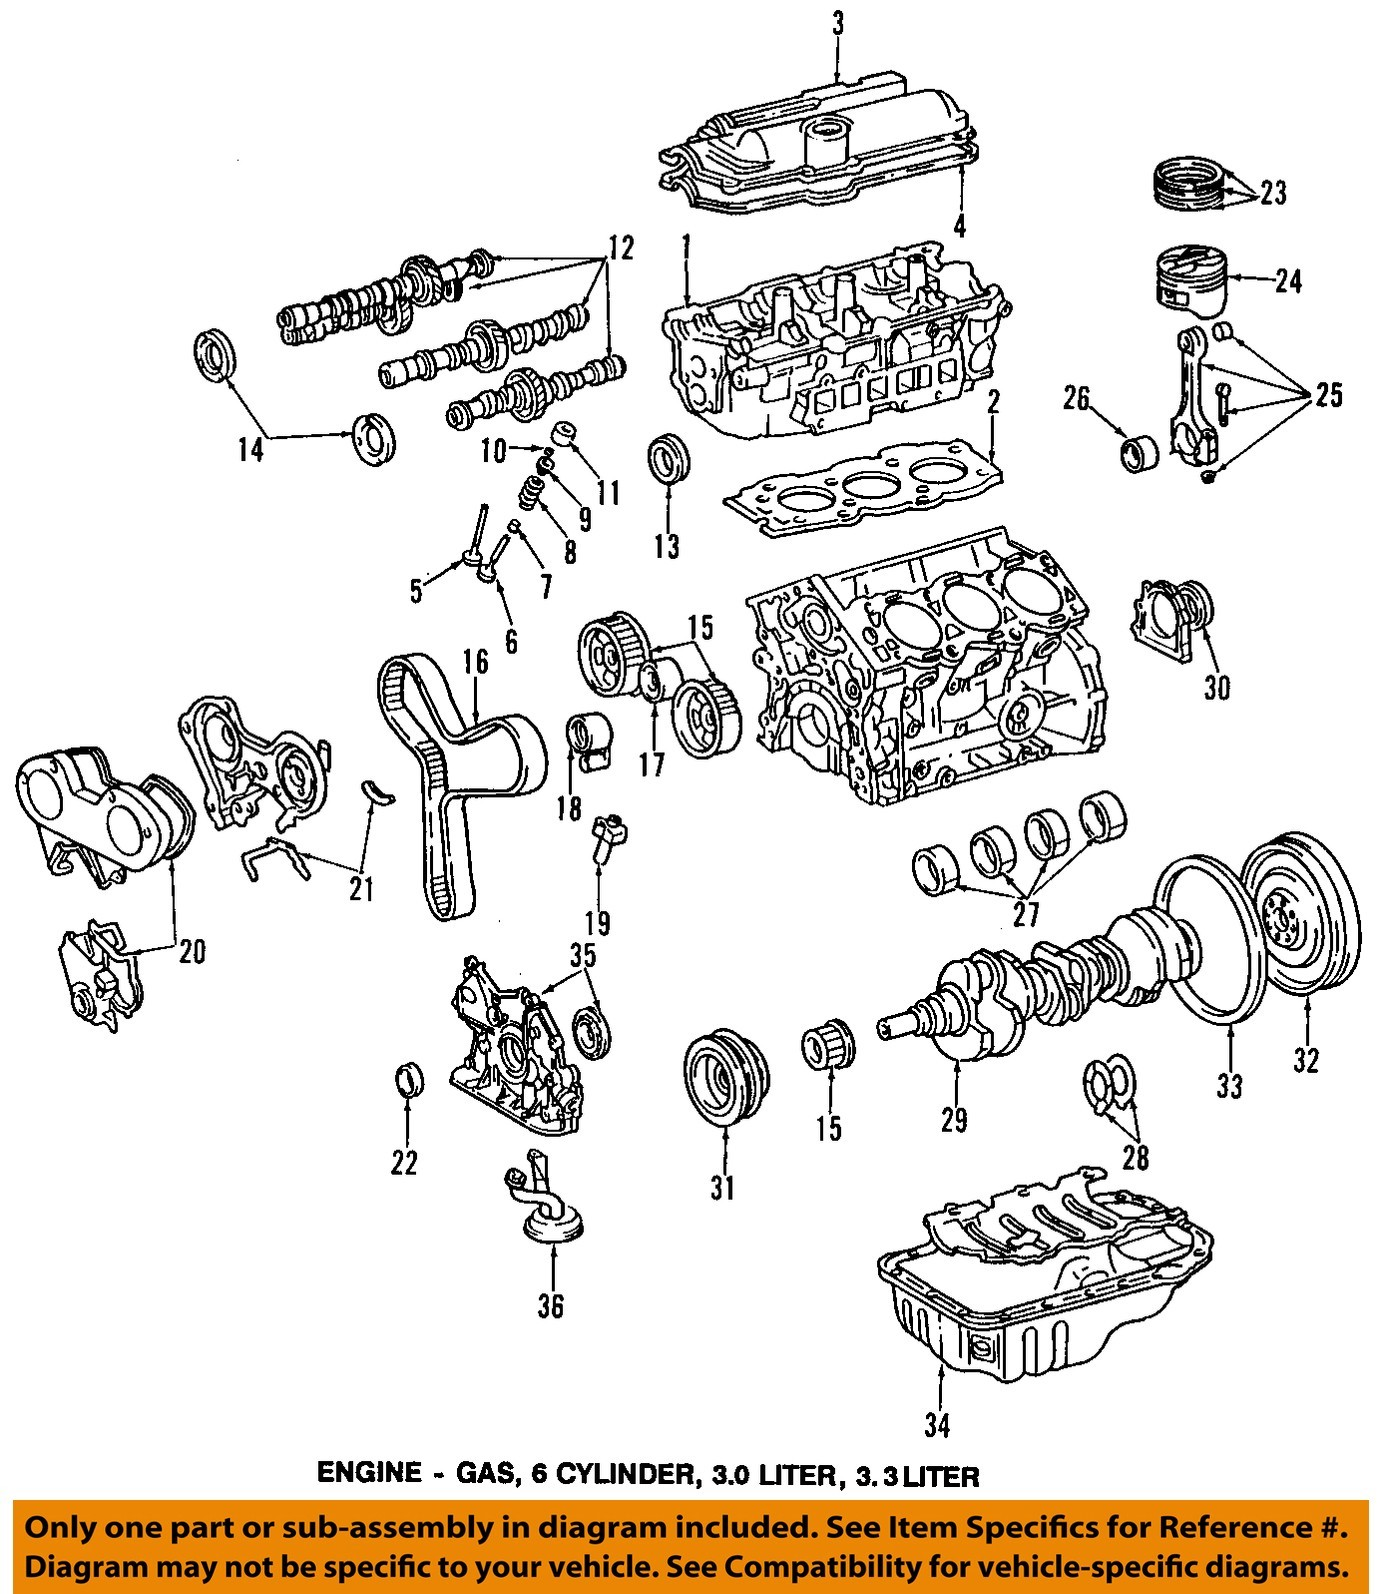 1994 Toyota Camry Engine Diagram 2006 Wiring 1997 Oem Valve Lifter My